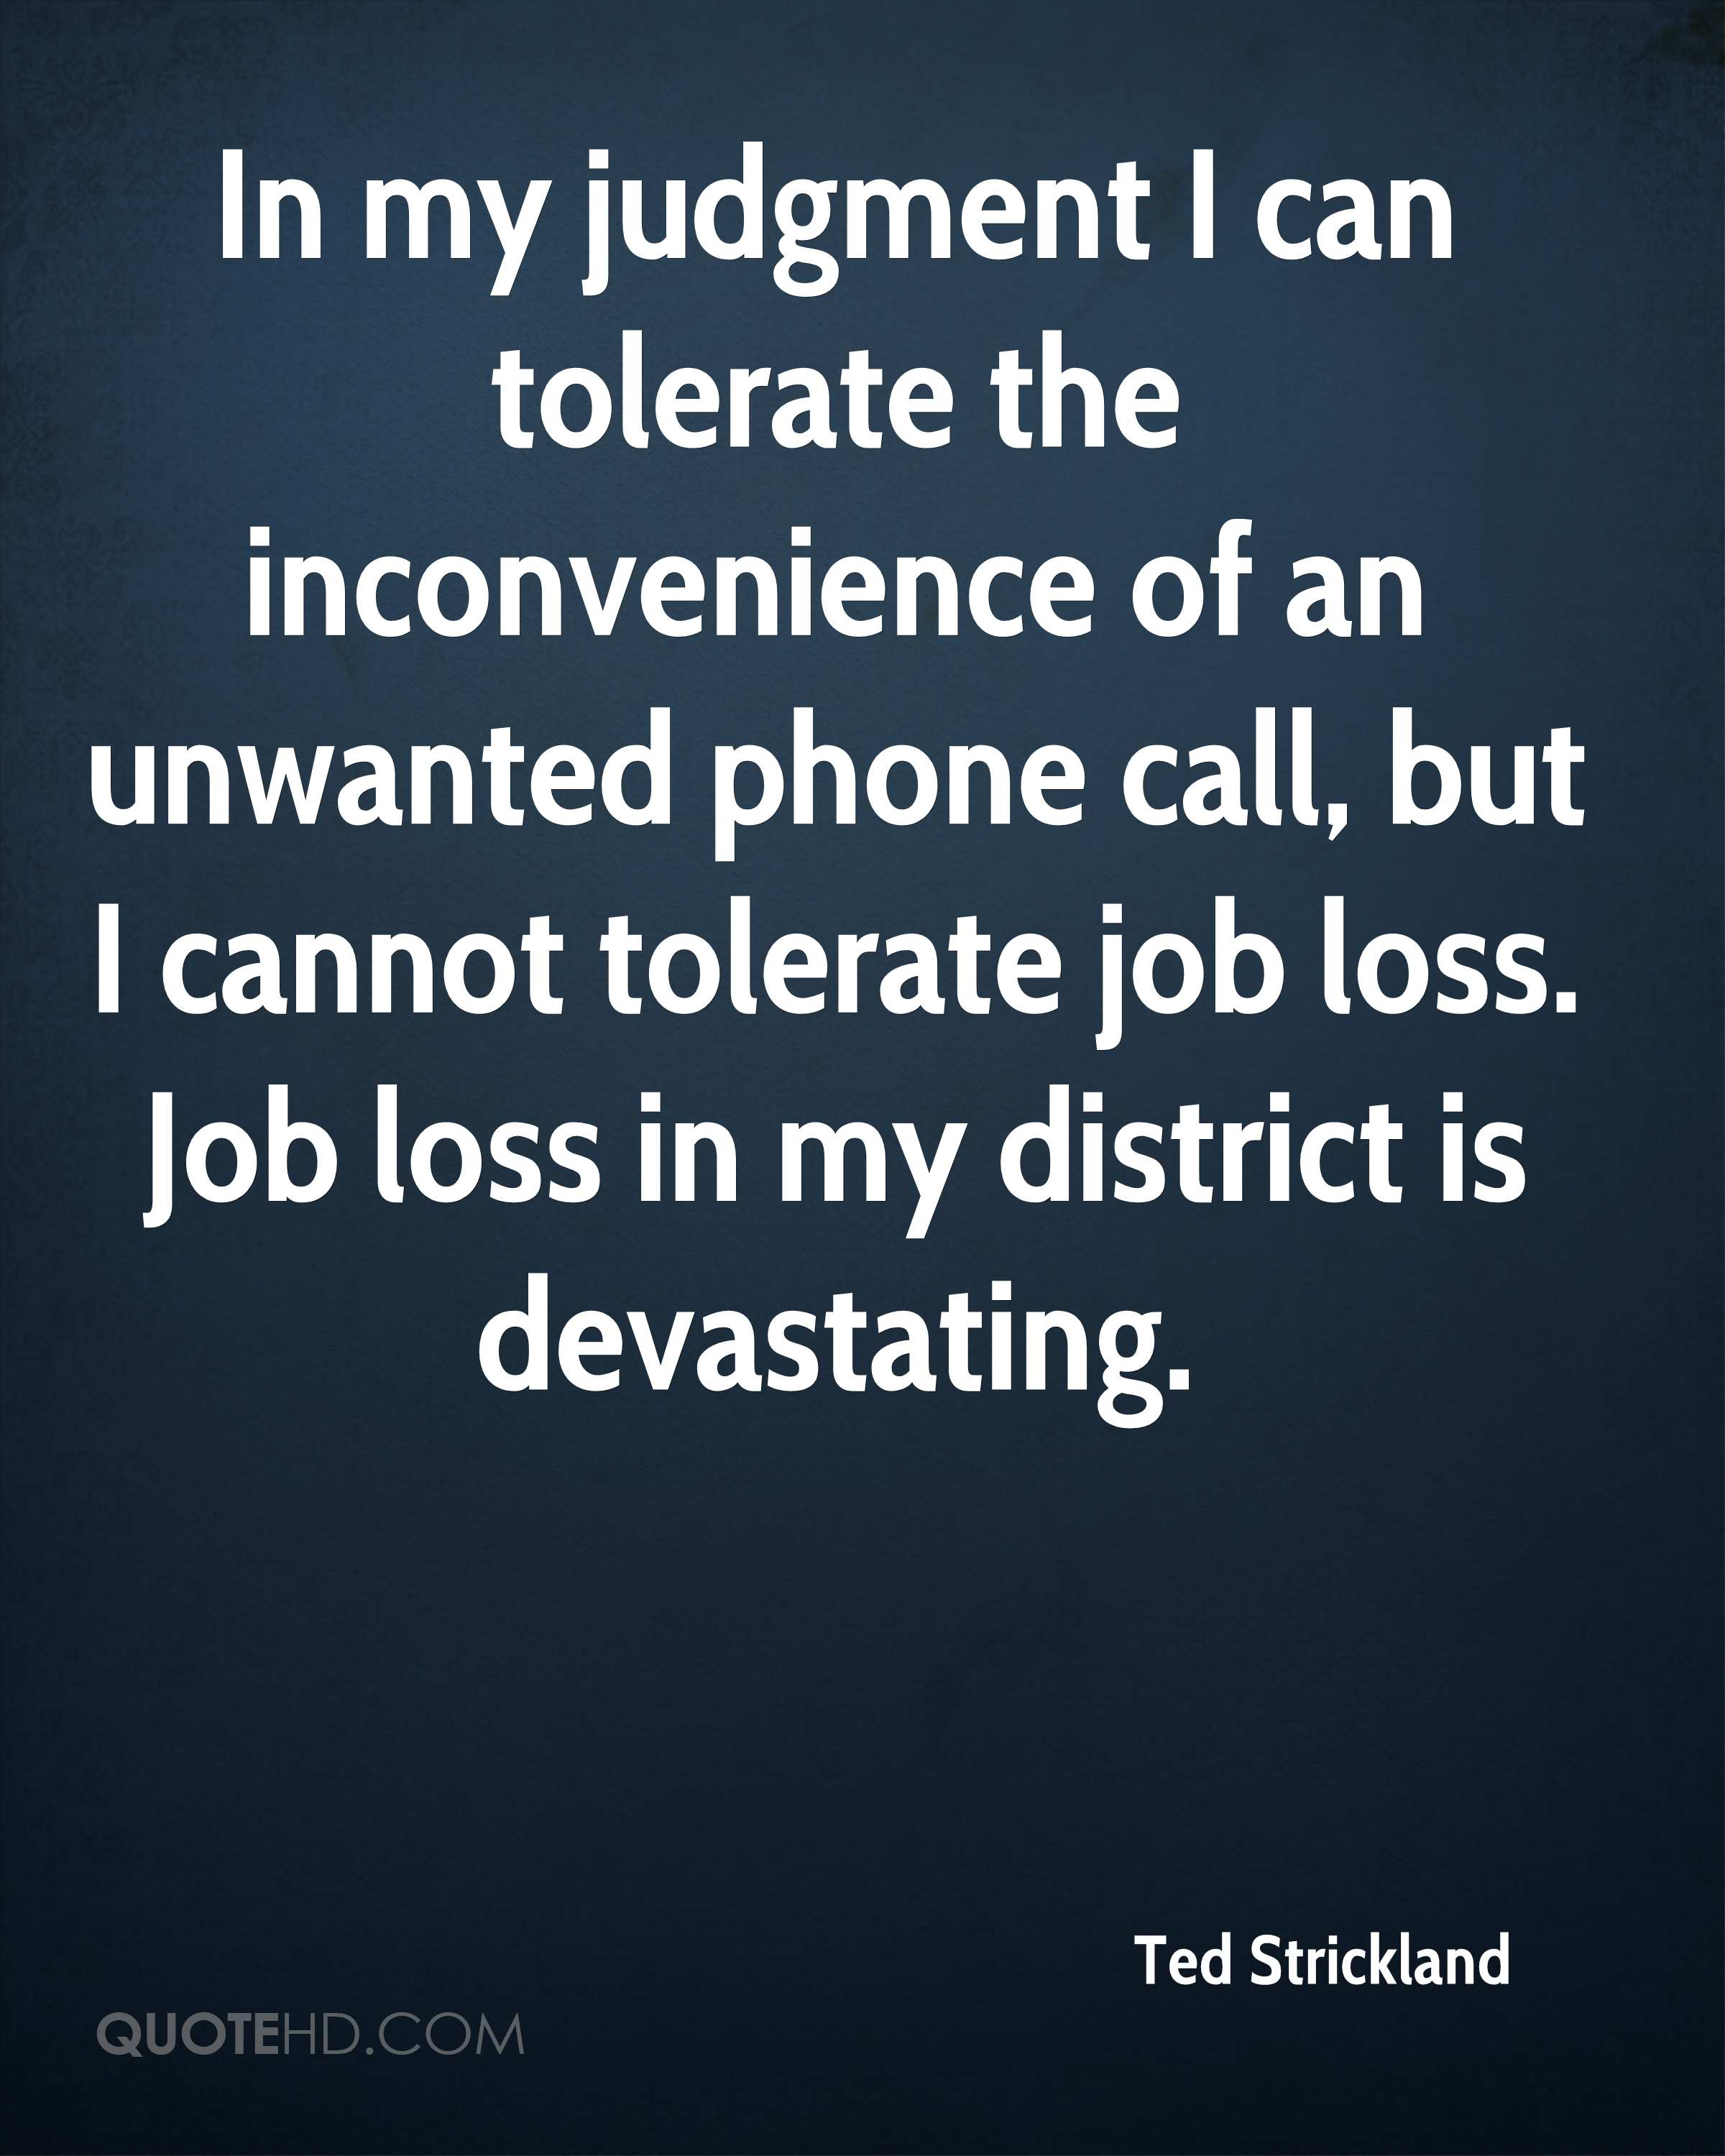 In my judgment I can tolerate the inconvenience of an unwanted phone call, but I cannot tolerate job loss. Job loss in my district is devastating.